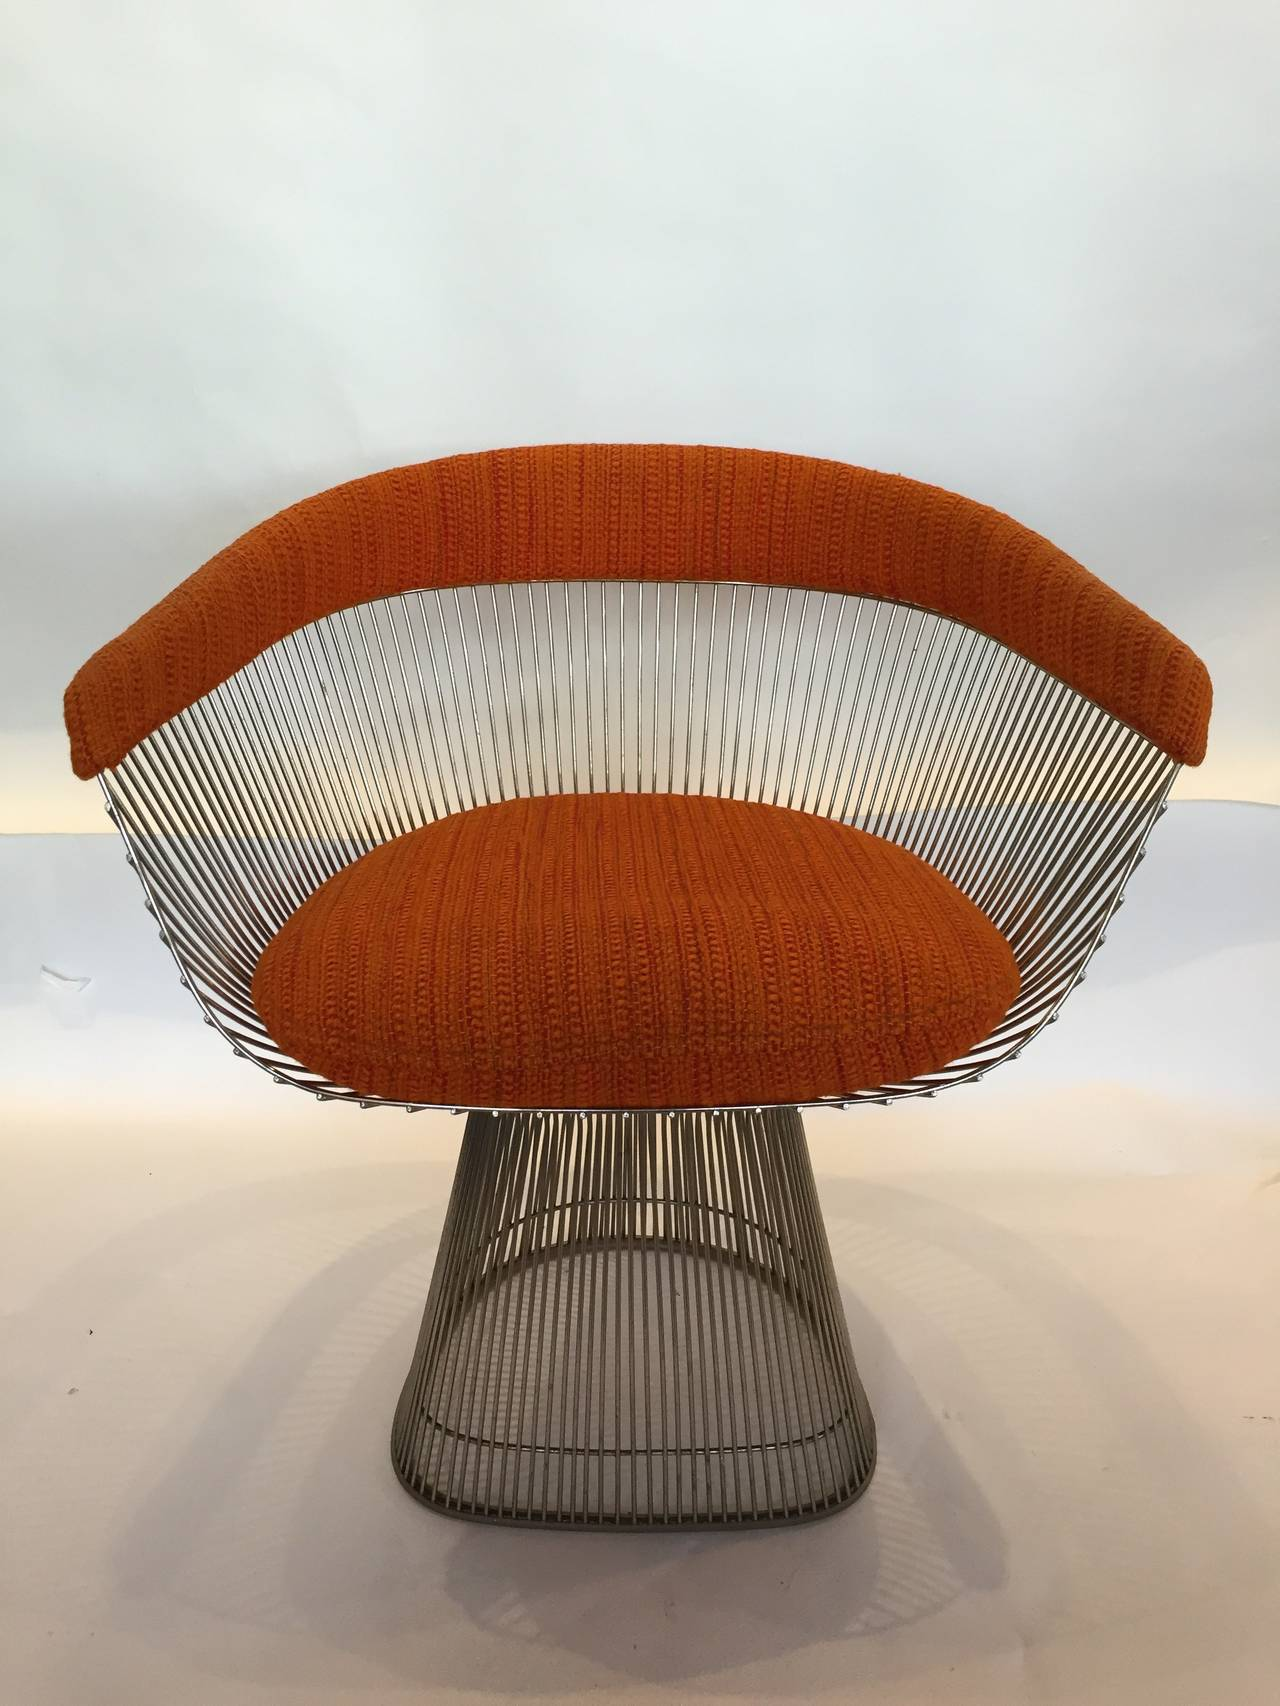 A single nickel framed side chair in original orange wool fabric (great original condition). Designed by Warren Platner for Knoll.